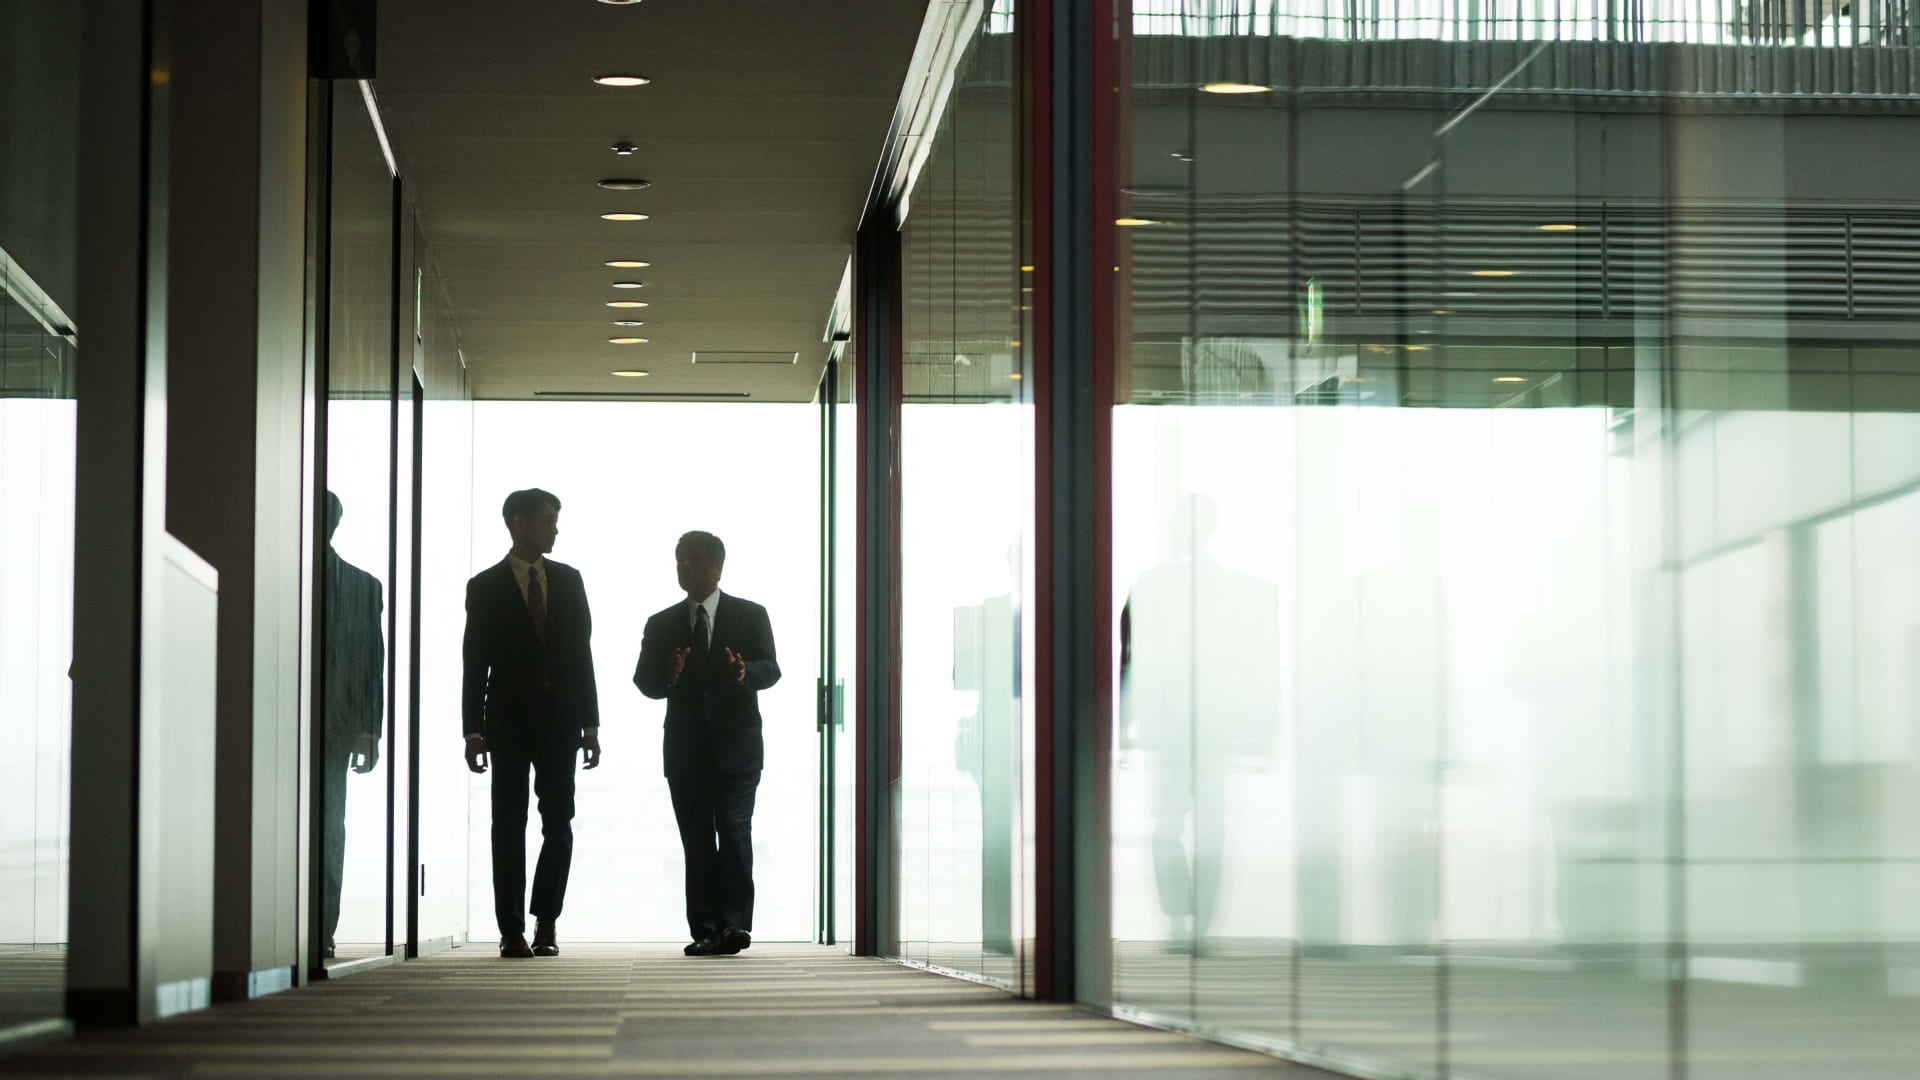 5 Key Lessons From a Likeable Exit